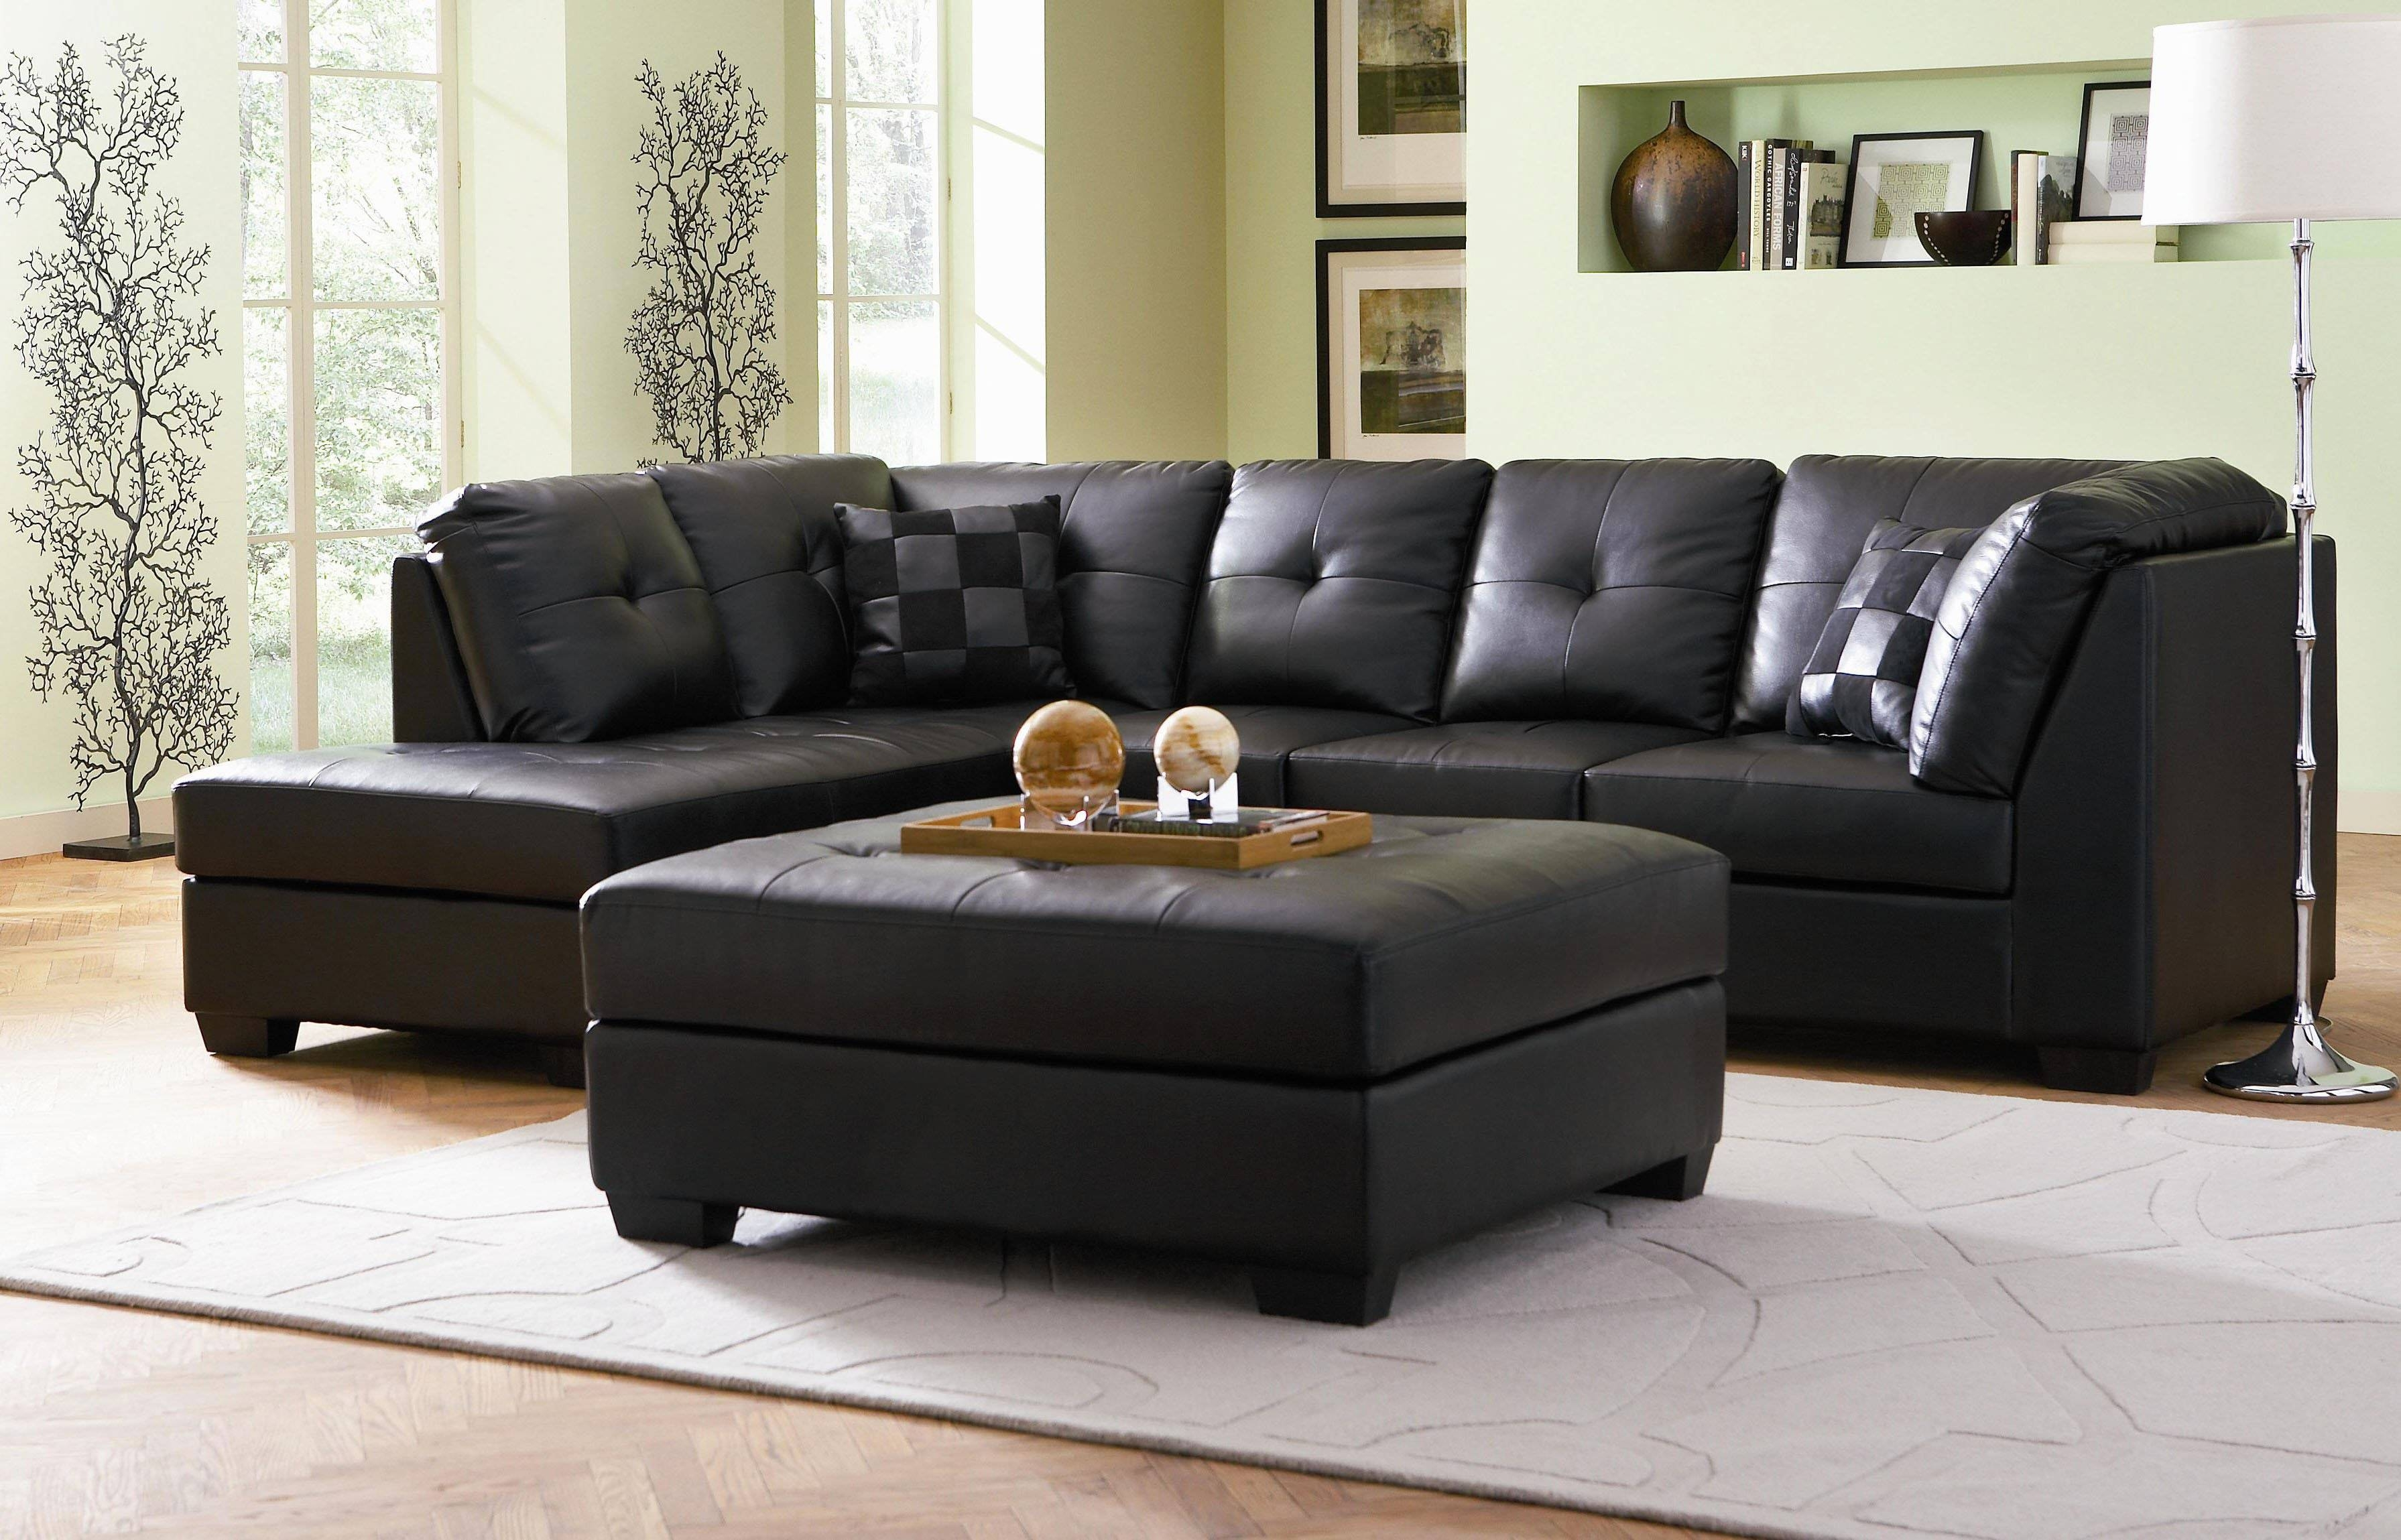 Sofas Center : Wonderful Cheap Black Sectional Sofa With regarding Black Sectional Sofa for Cheap (Image 28 of 30)